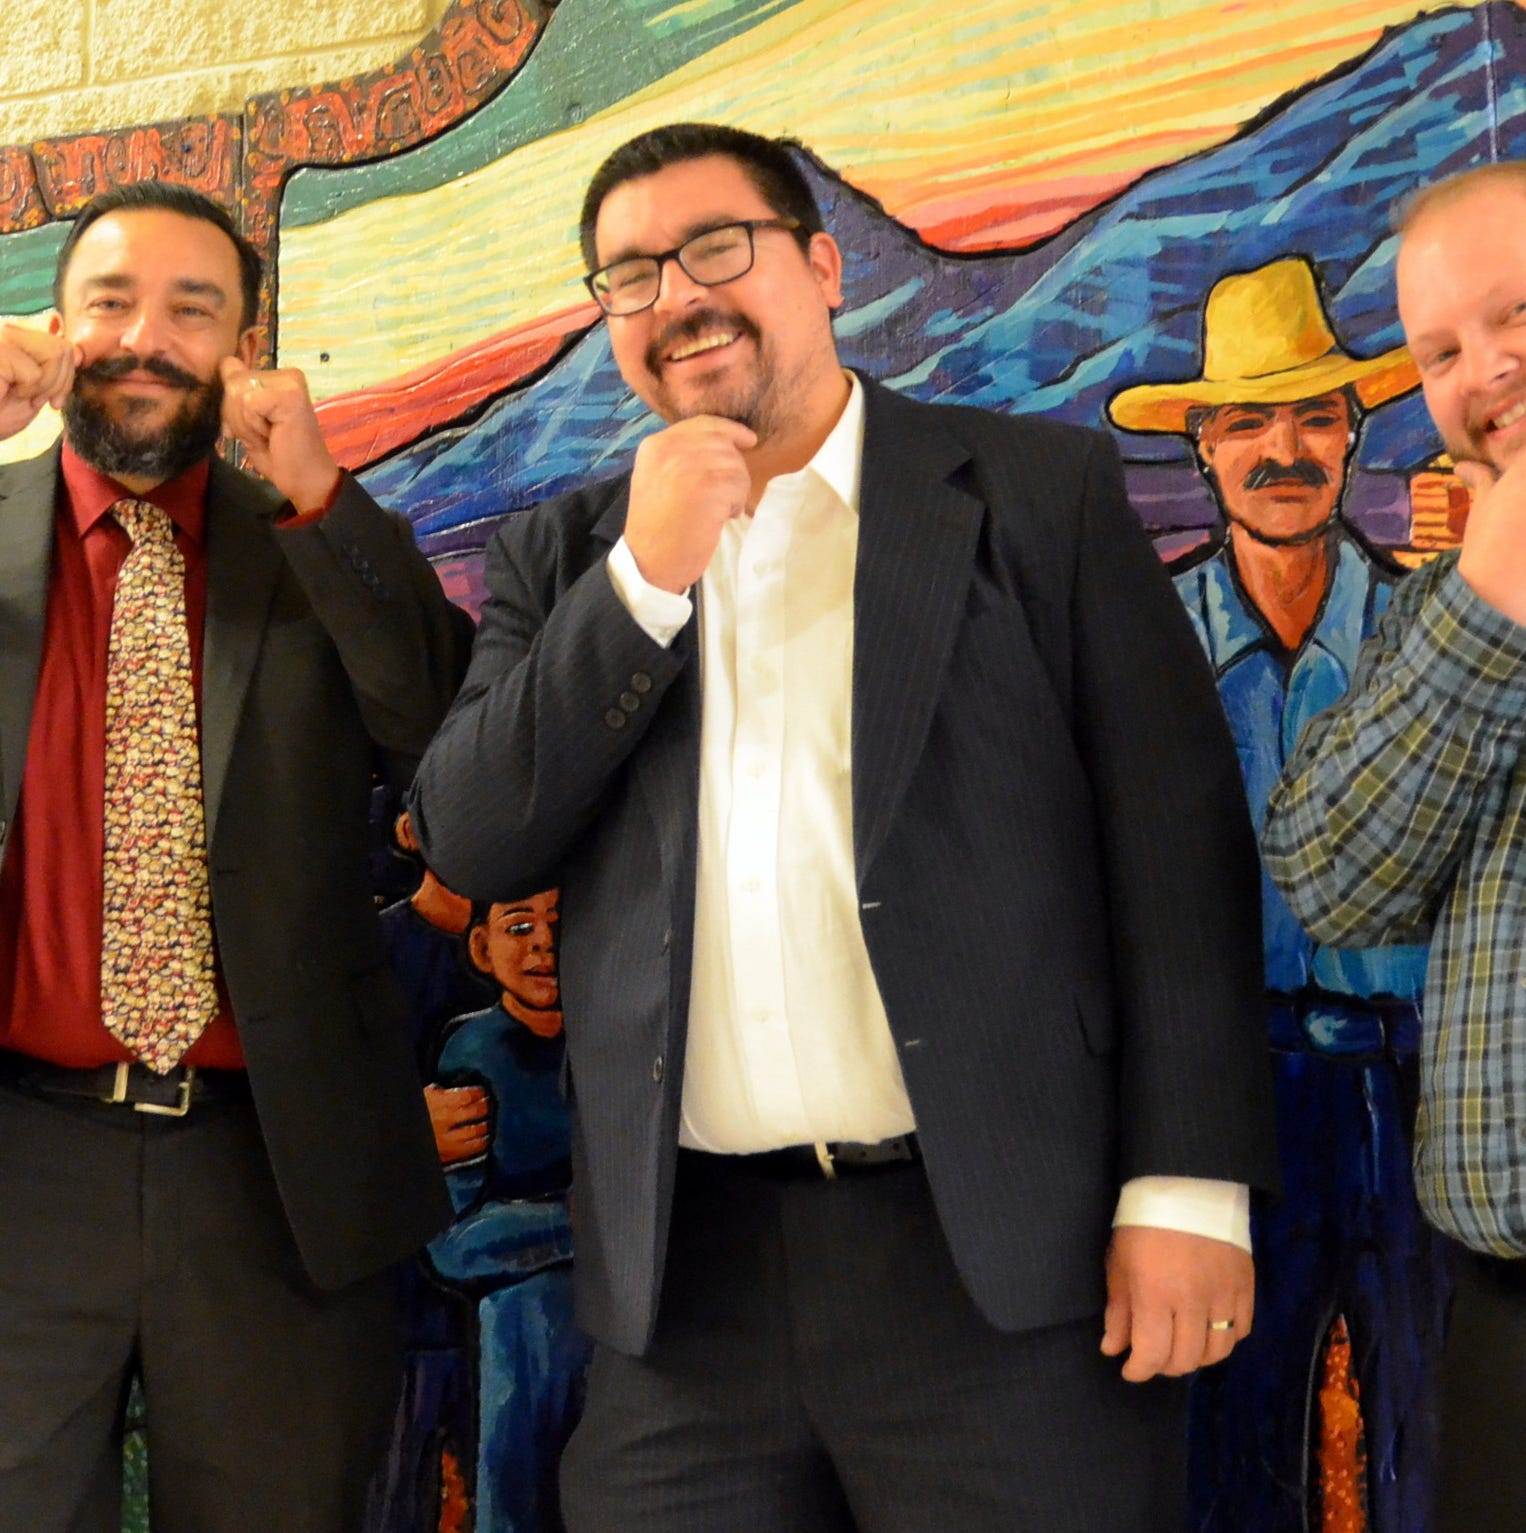 Deming Public School and MainStreet host No-Shave November Fundraising Contest